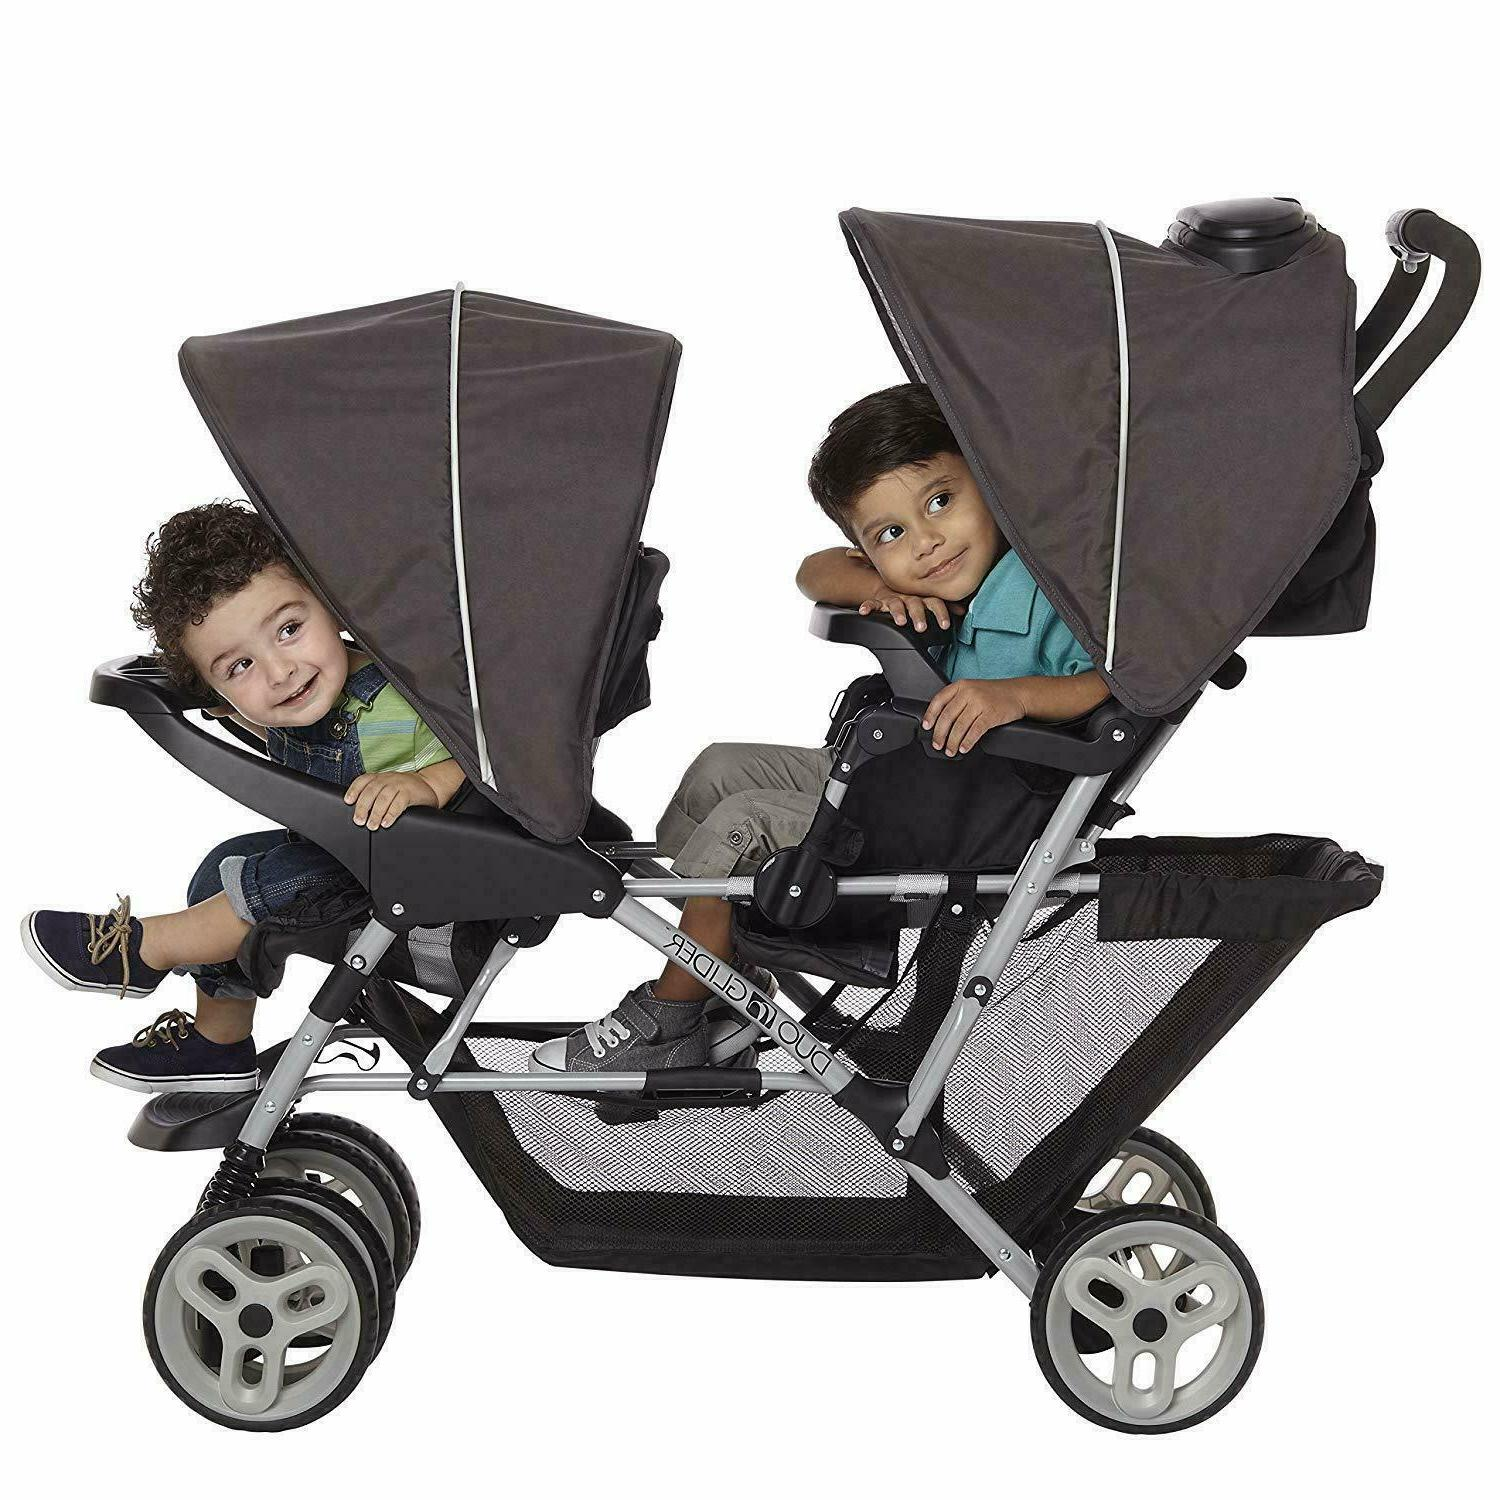 GRACO BABY DOUBLE FOLDABLE WITH